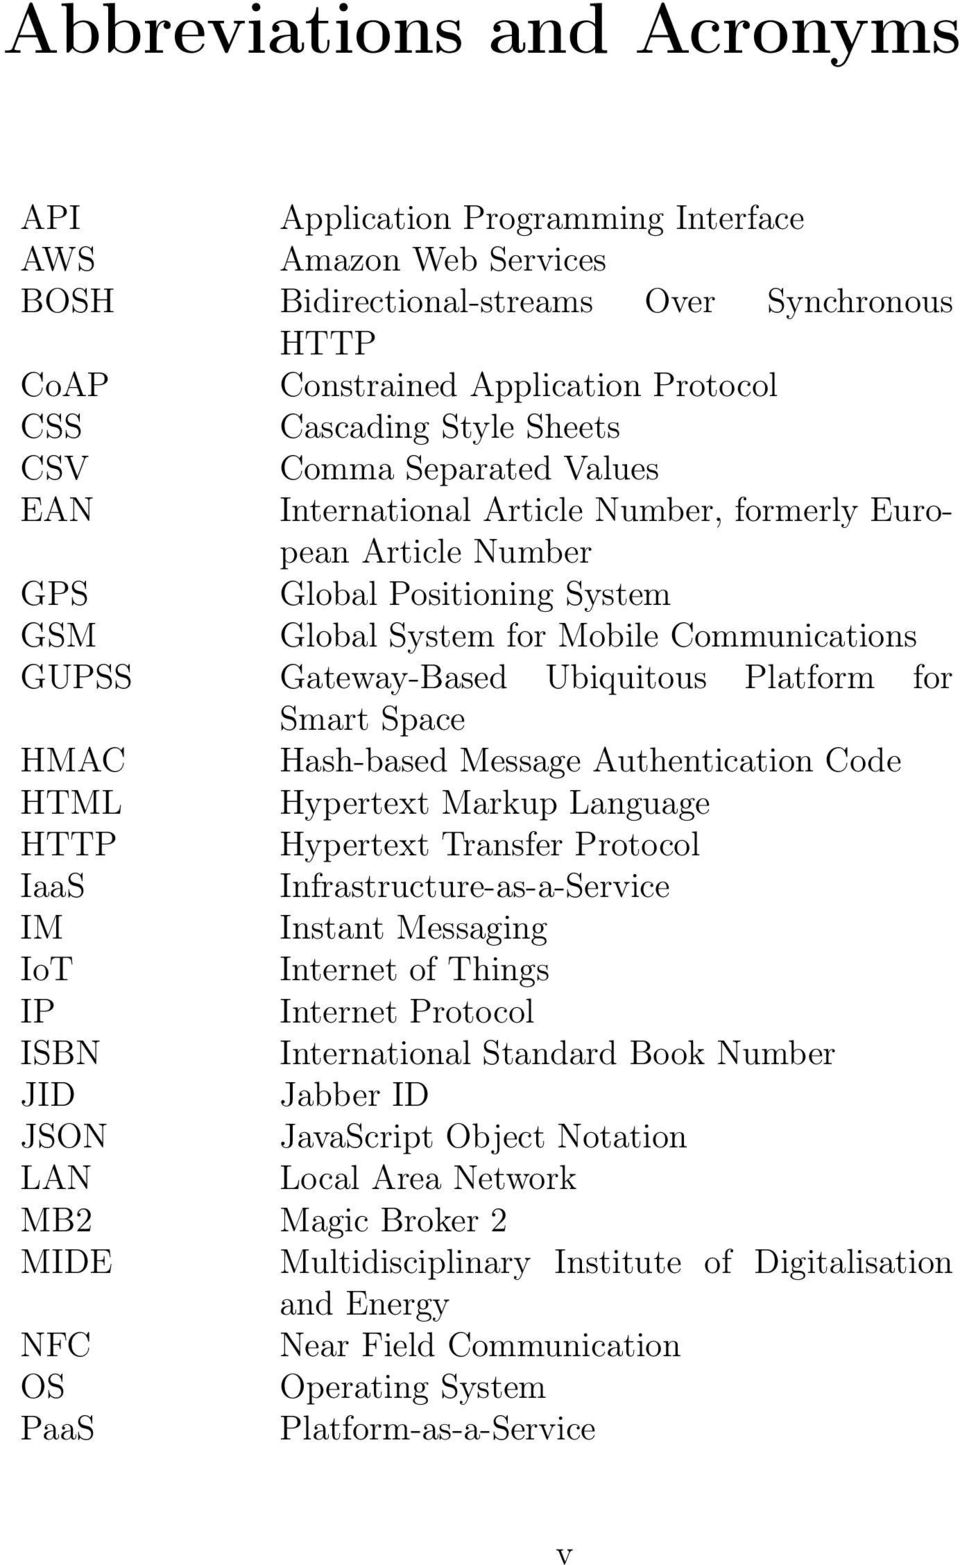 Ubiquitous Platform for Smart Space HMAC Hash-based Message Authentication Code HTML Hypertext Markup Language HTTP Hypertext Transfer Protocol IaaS Infrastructure-as-a-Service IM Instant Messaging